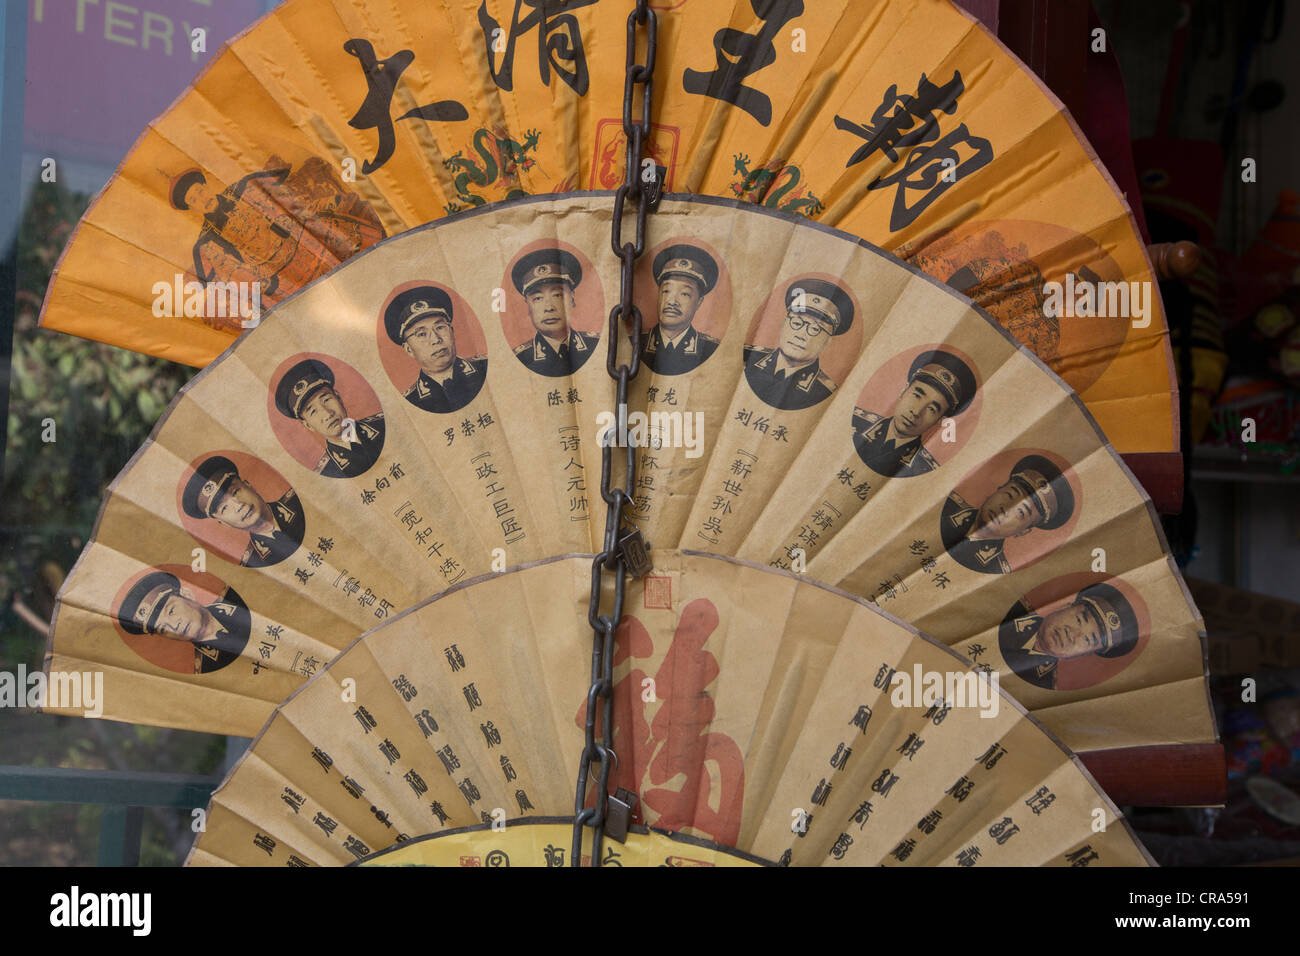 Fan with military portraits, in Beijing, China. - Stock Image